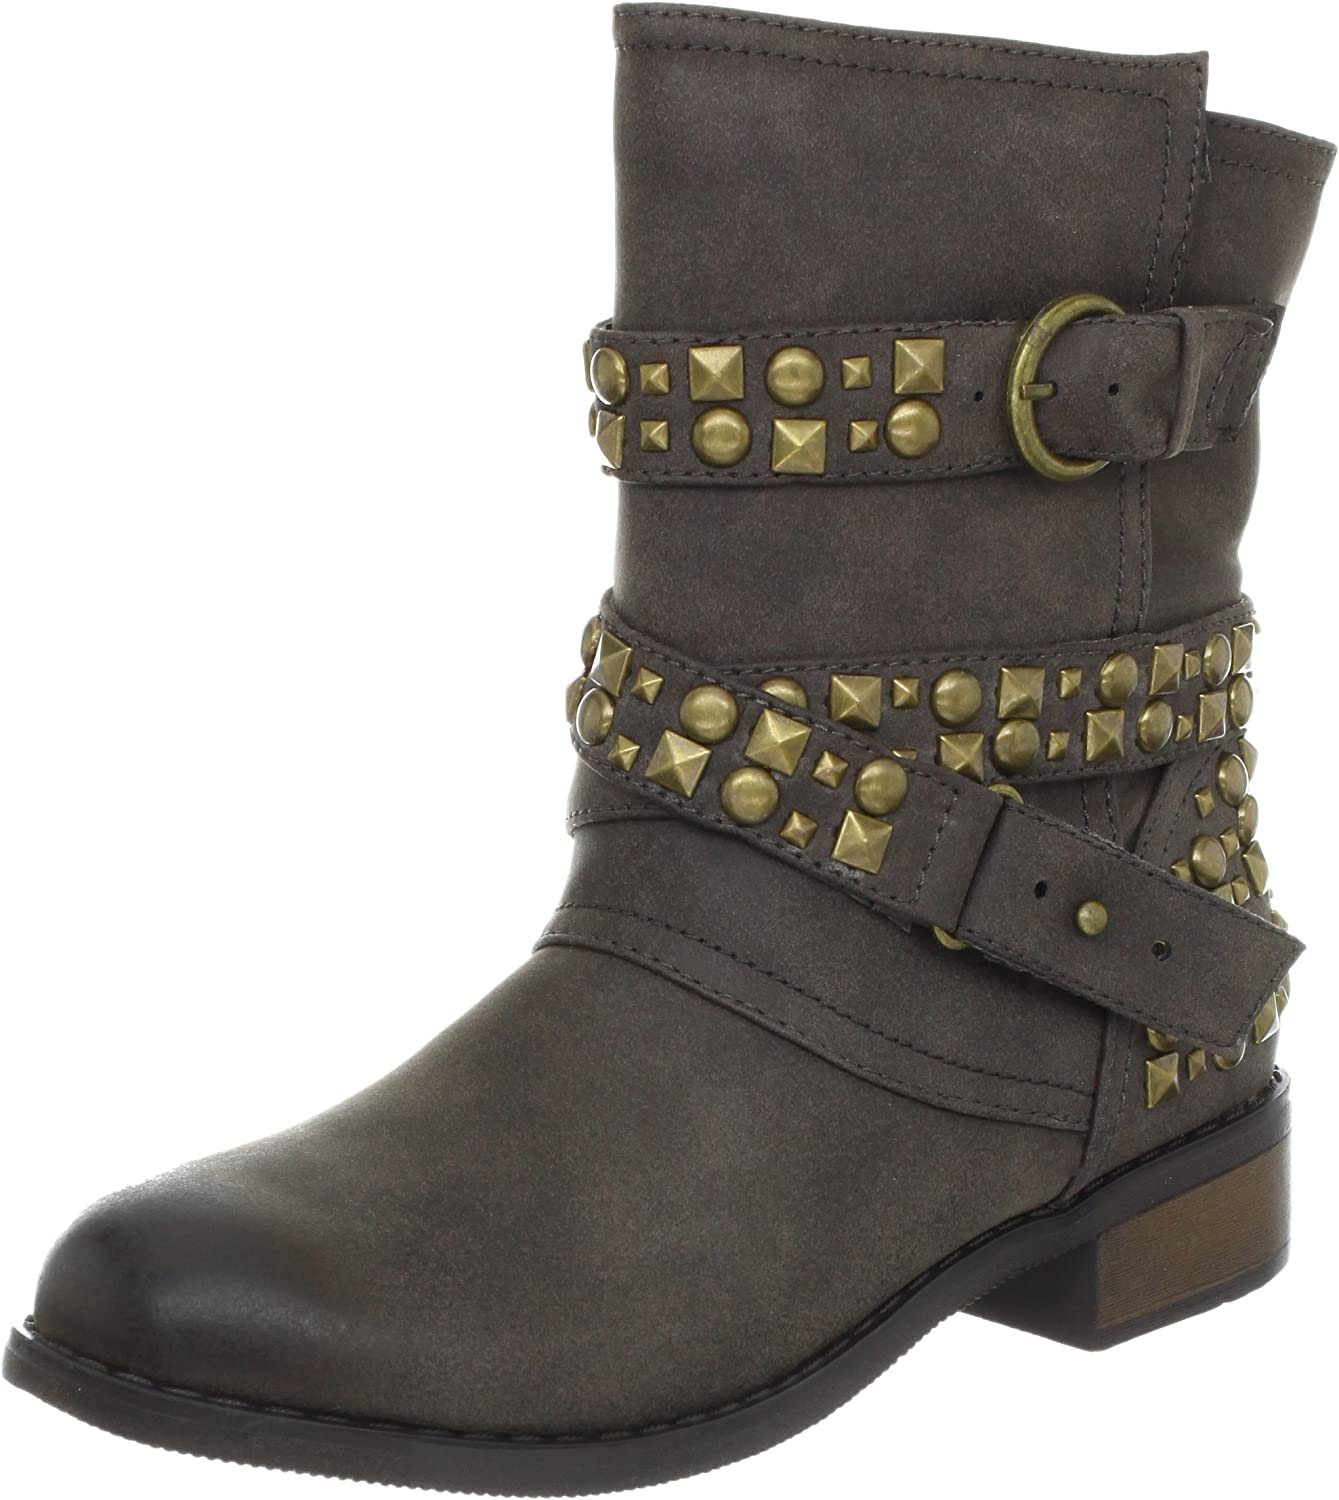 Dirty Laundry by Chinese Laundry Women's Showstopper Motorcycle Boot